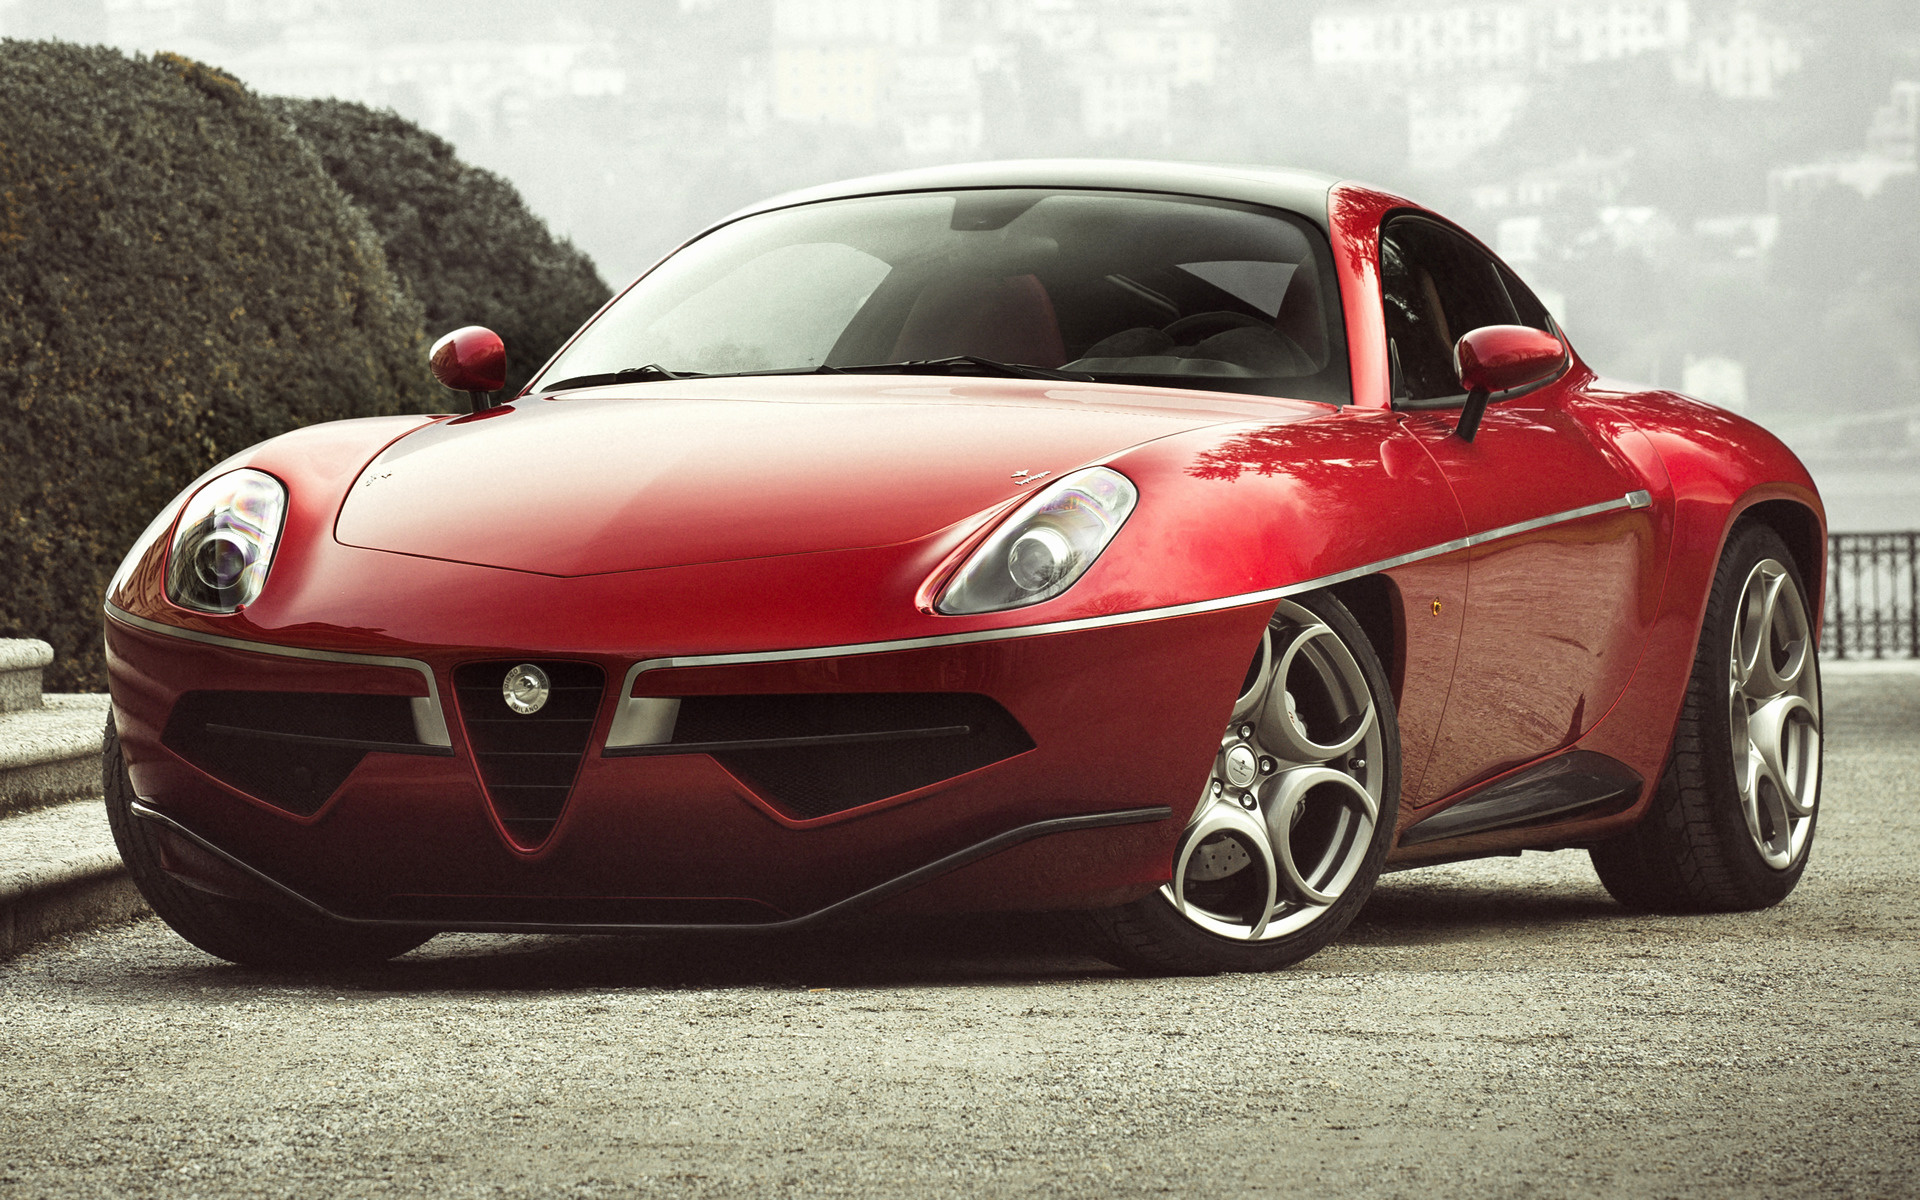 alfa romeo disco volante 2013 wallpapers and hd images car pixel. Black Bedroom Furniture Sets. Home Design Ideas